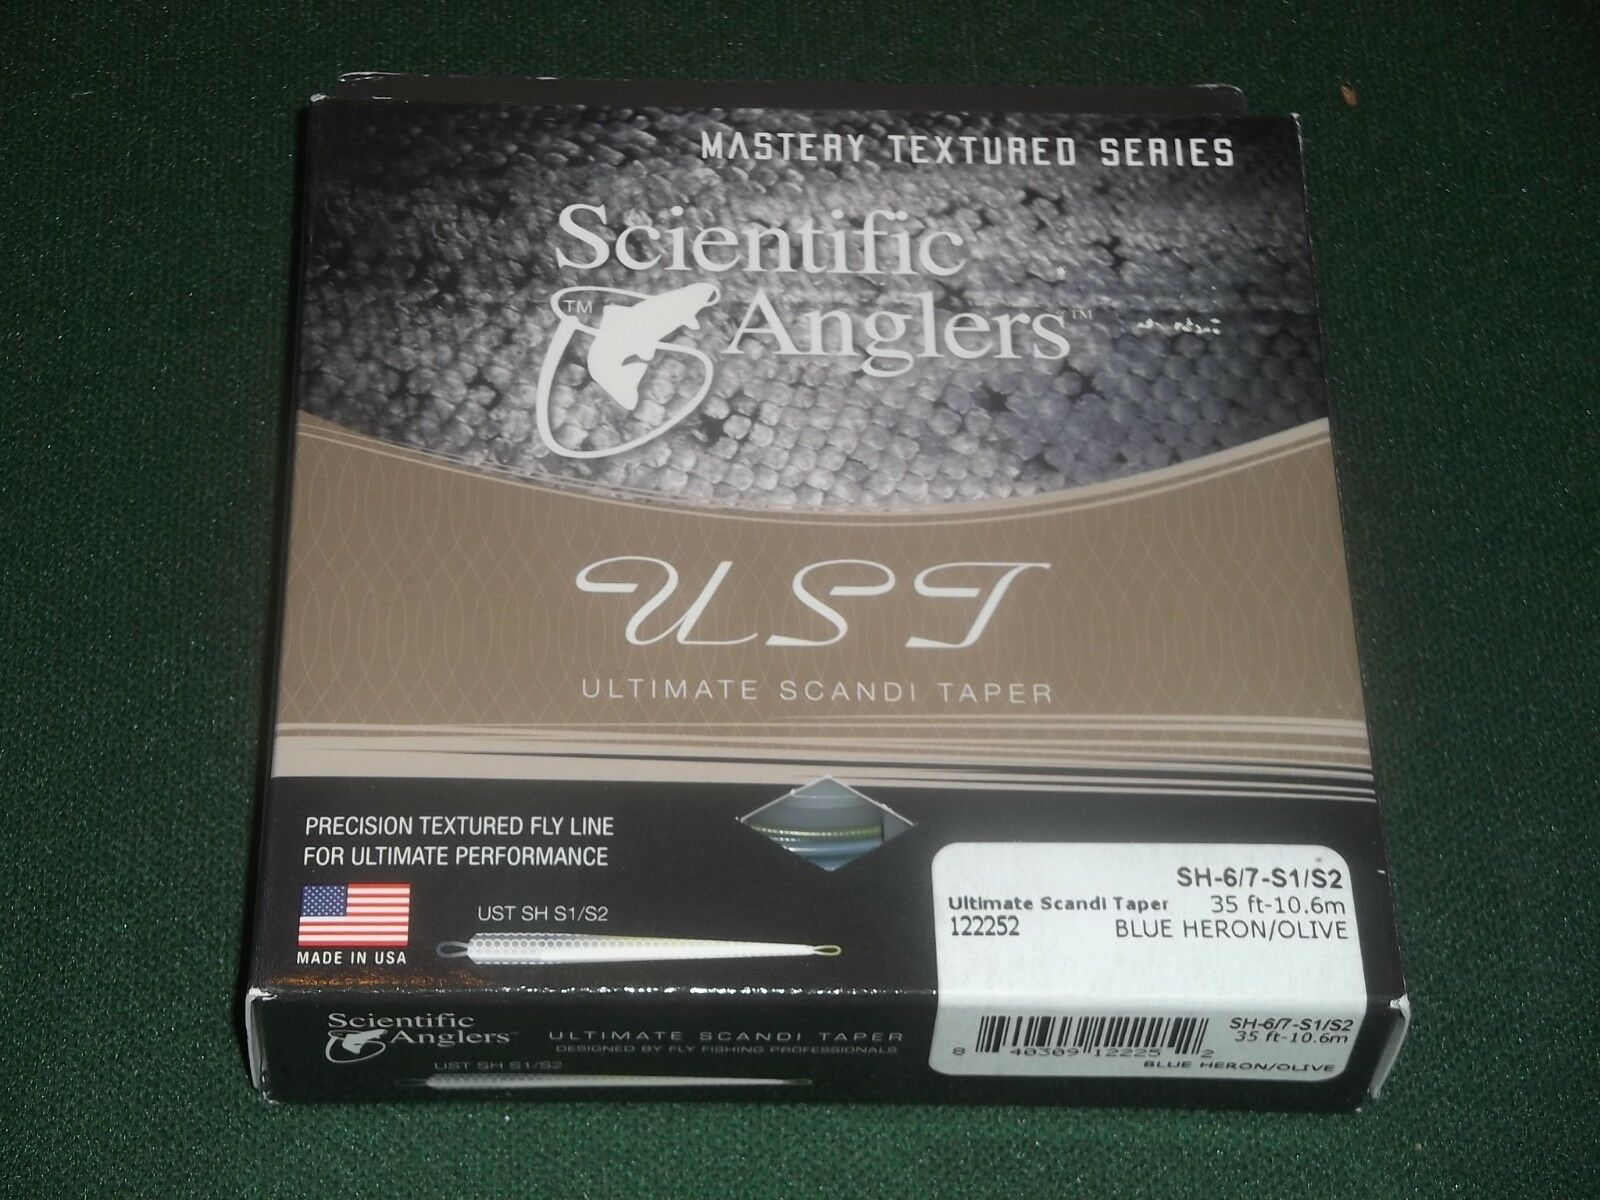 SCIENTIFIC ANGLERS ULTIMATE SCANDI TAPER SH-6 7-S1 S2 blueE HERON OLIVE LINE